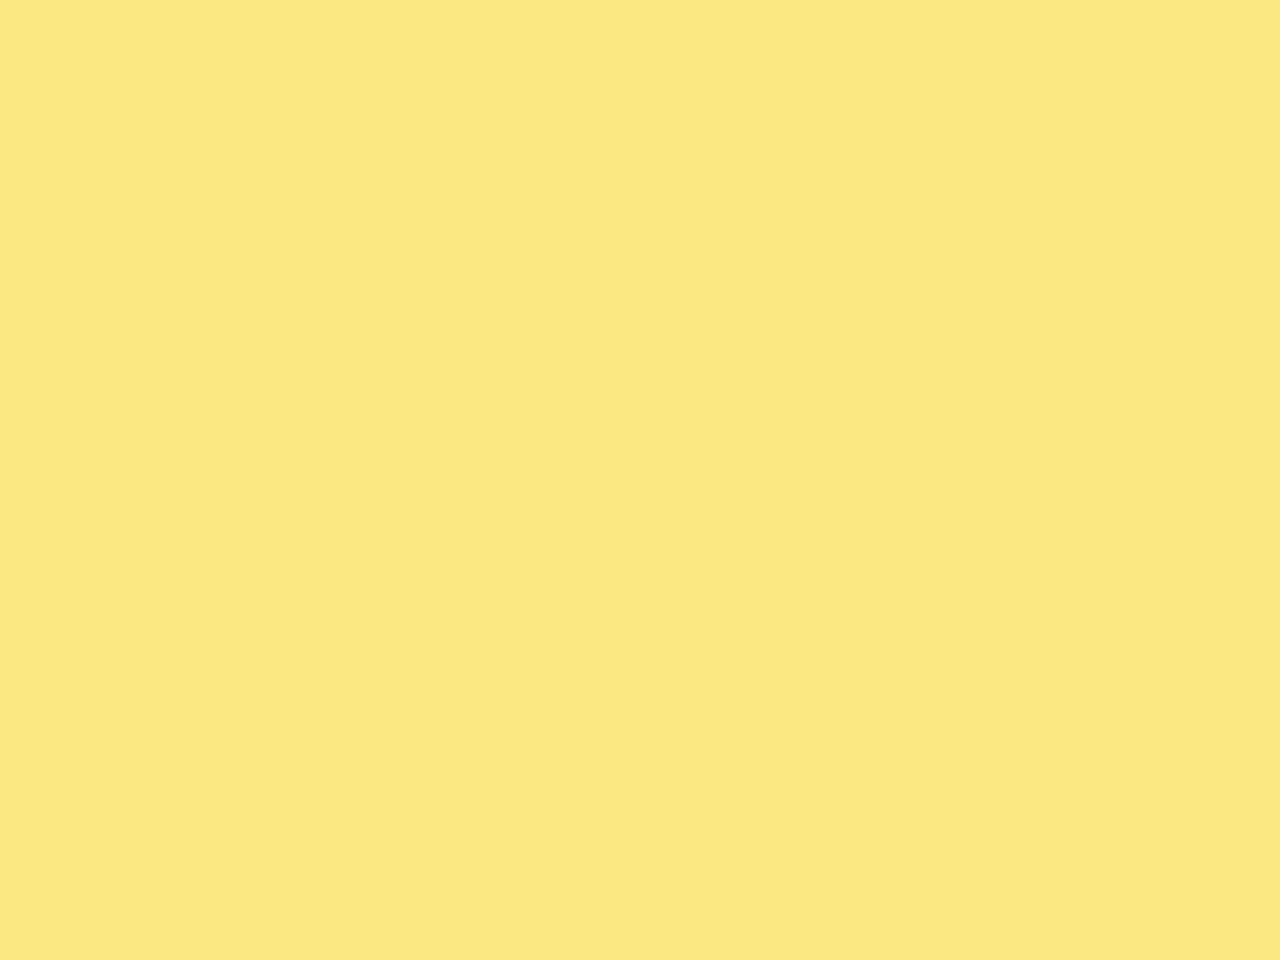 1280x960 Yellow Crayola Solid Color Background